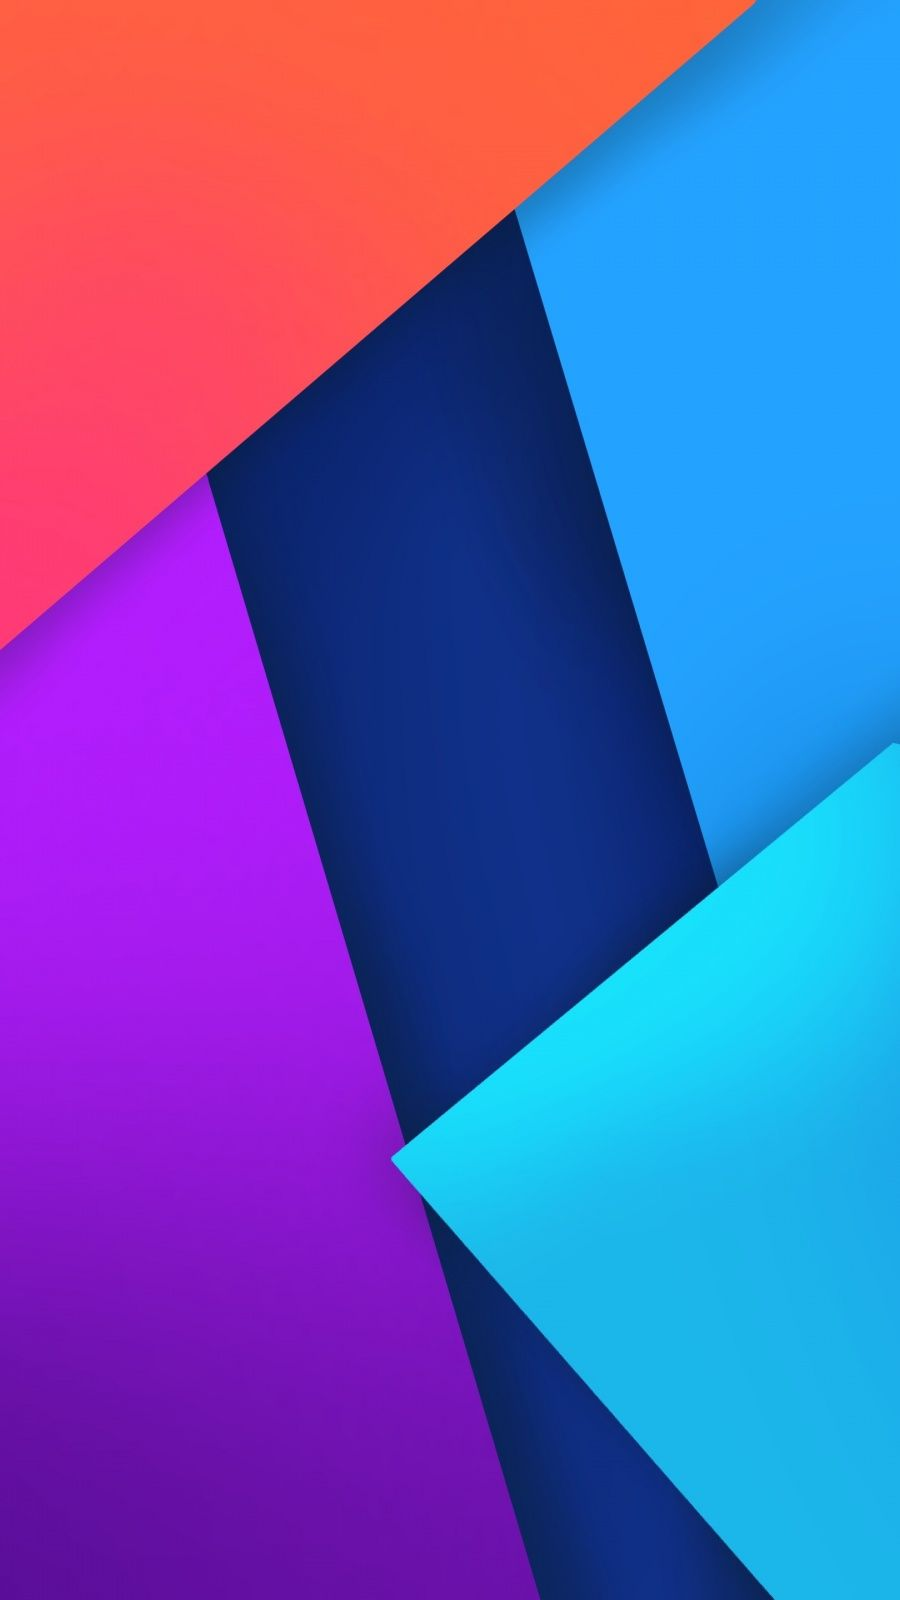 Get Great Background for iPhone SE 2019